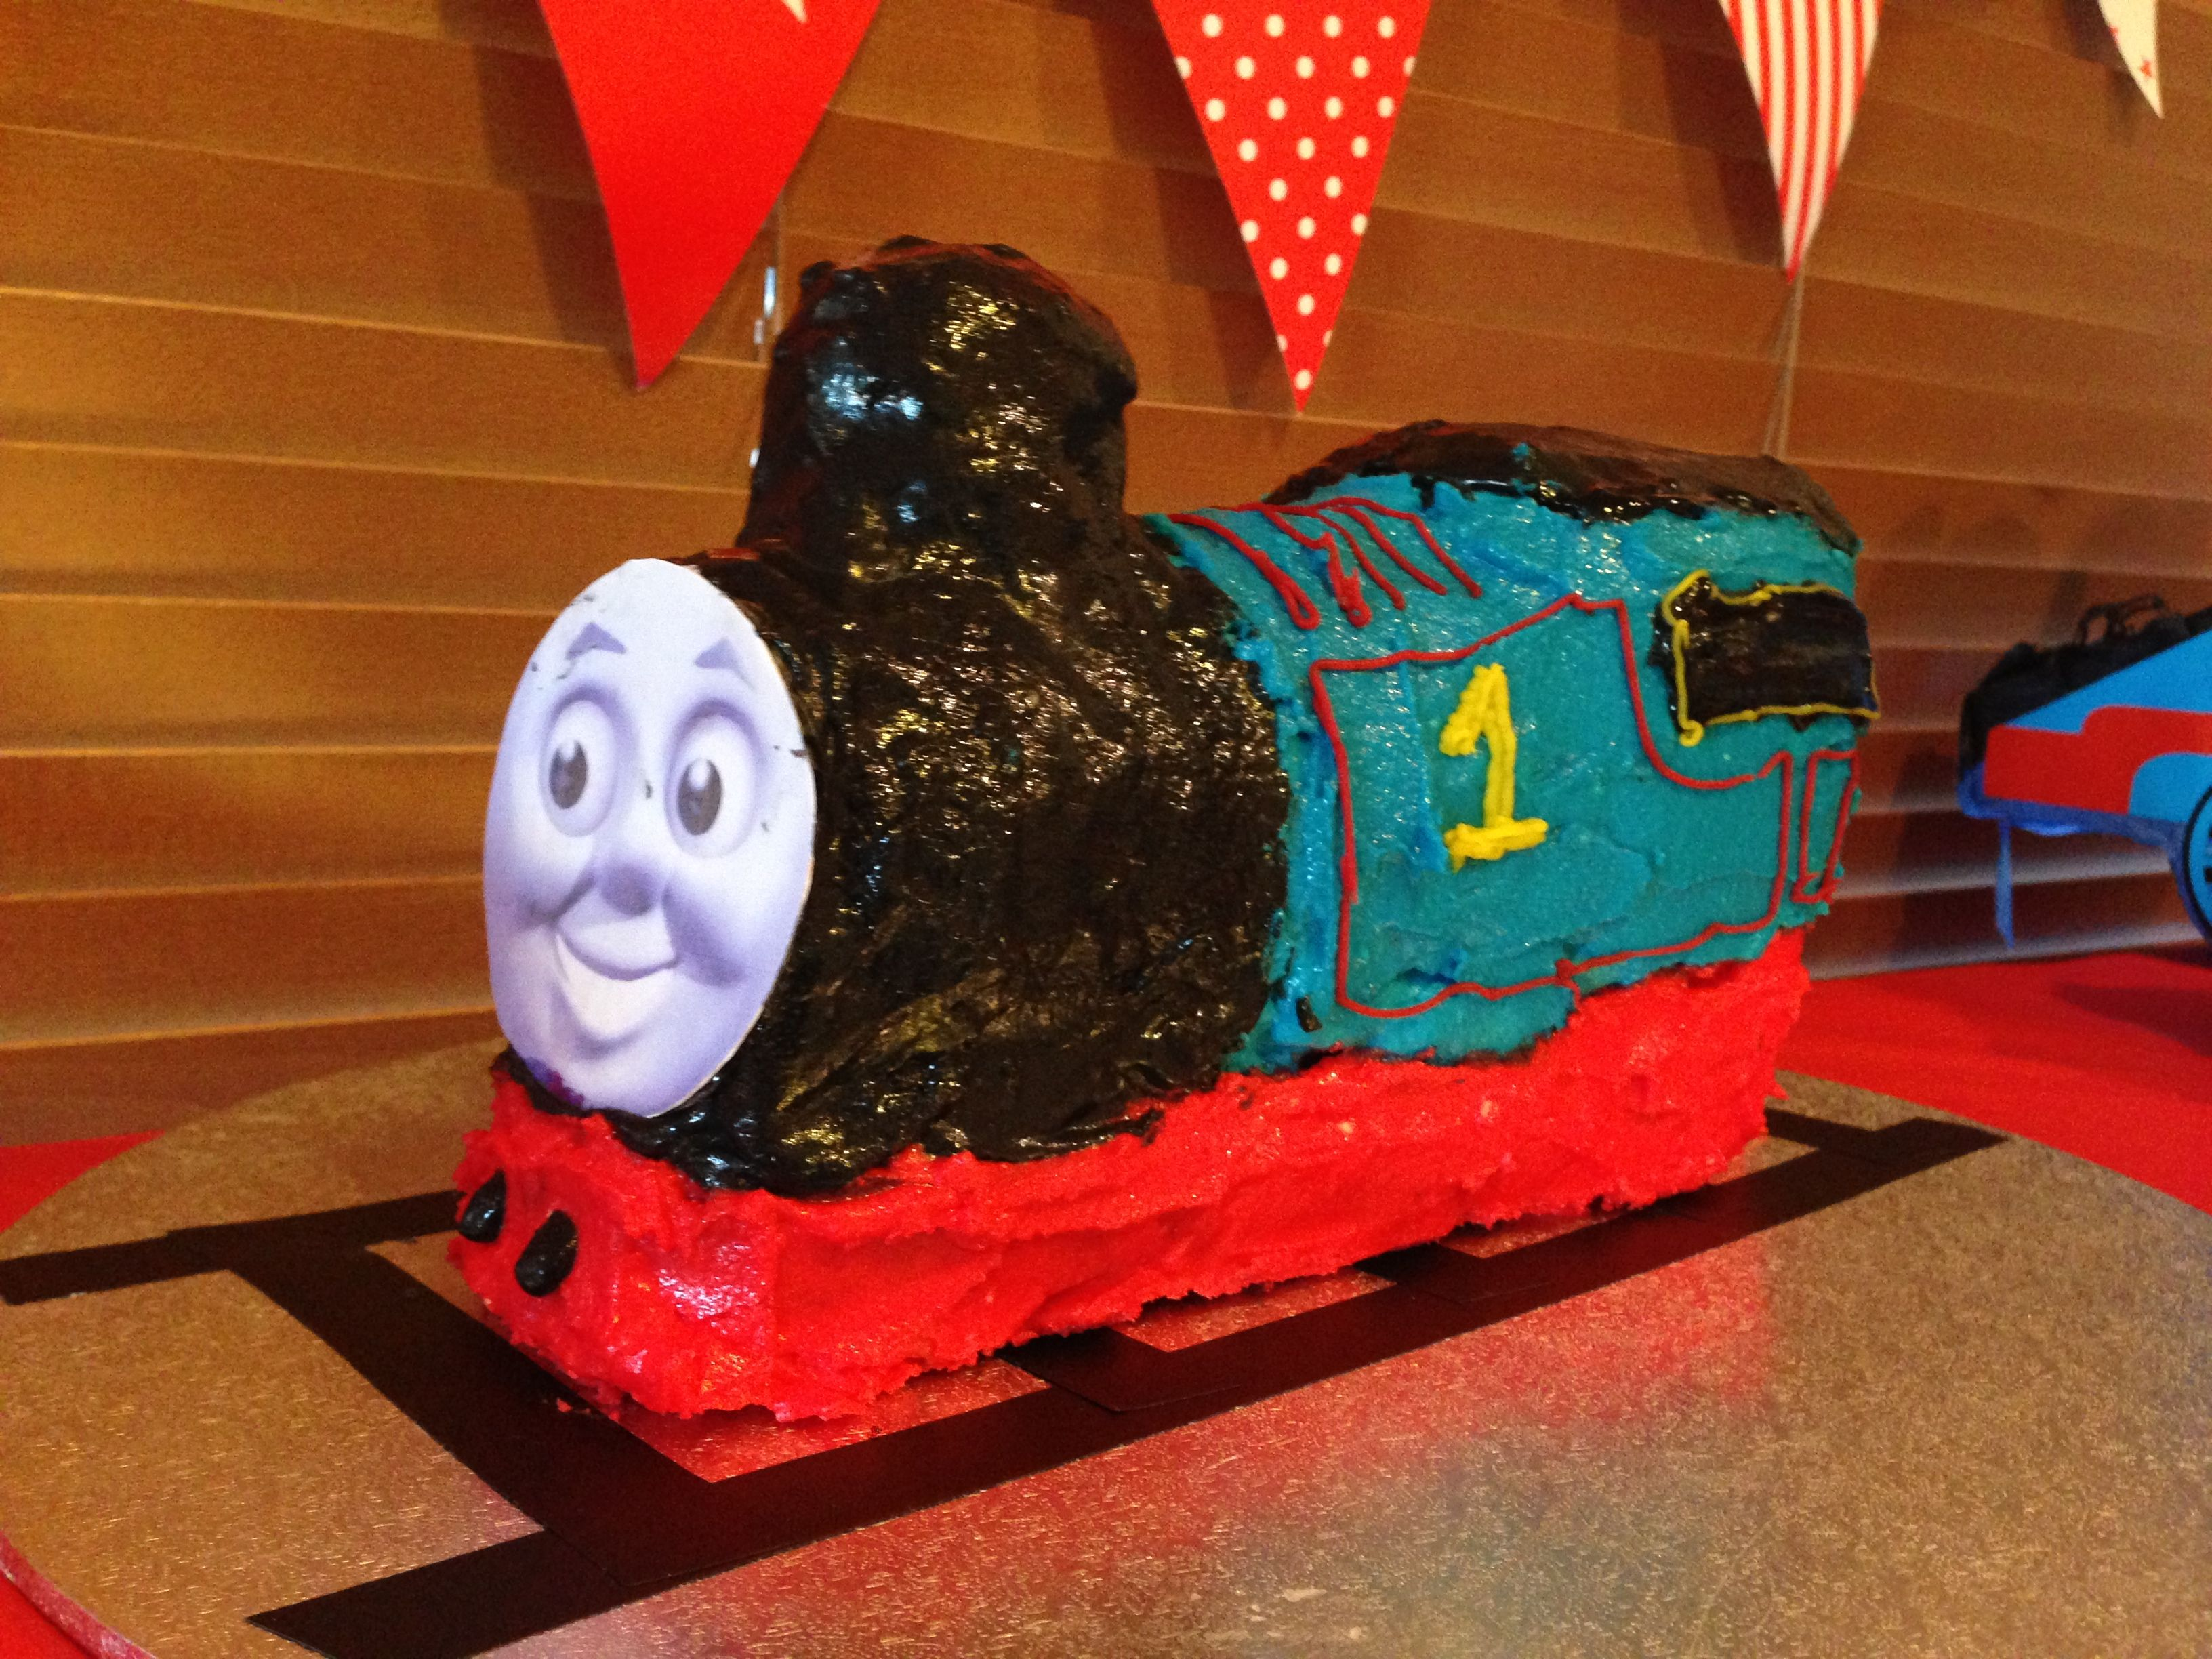 Attempted Thomas tank engine cake with cardboard face (fondant too fiddly).